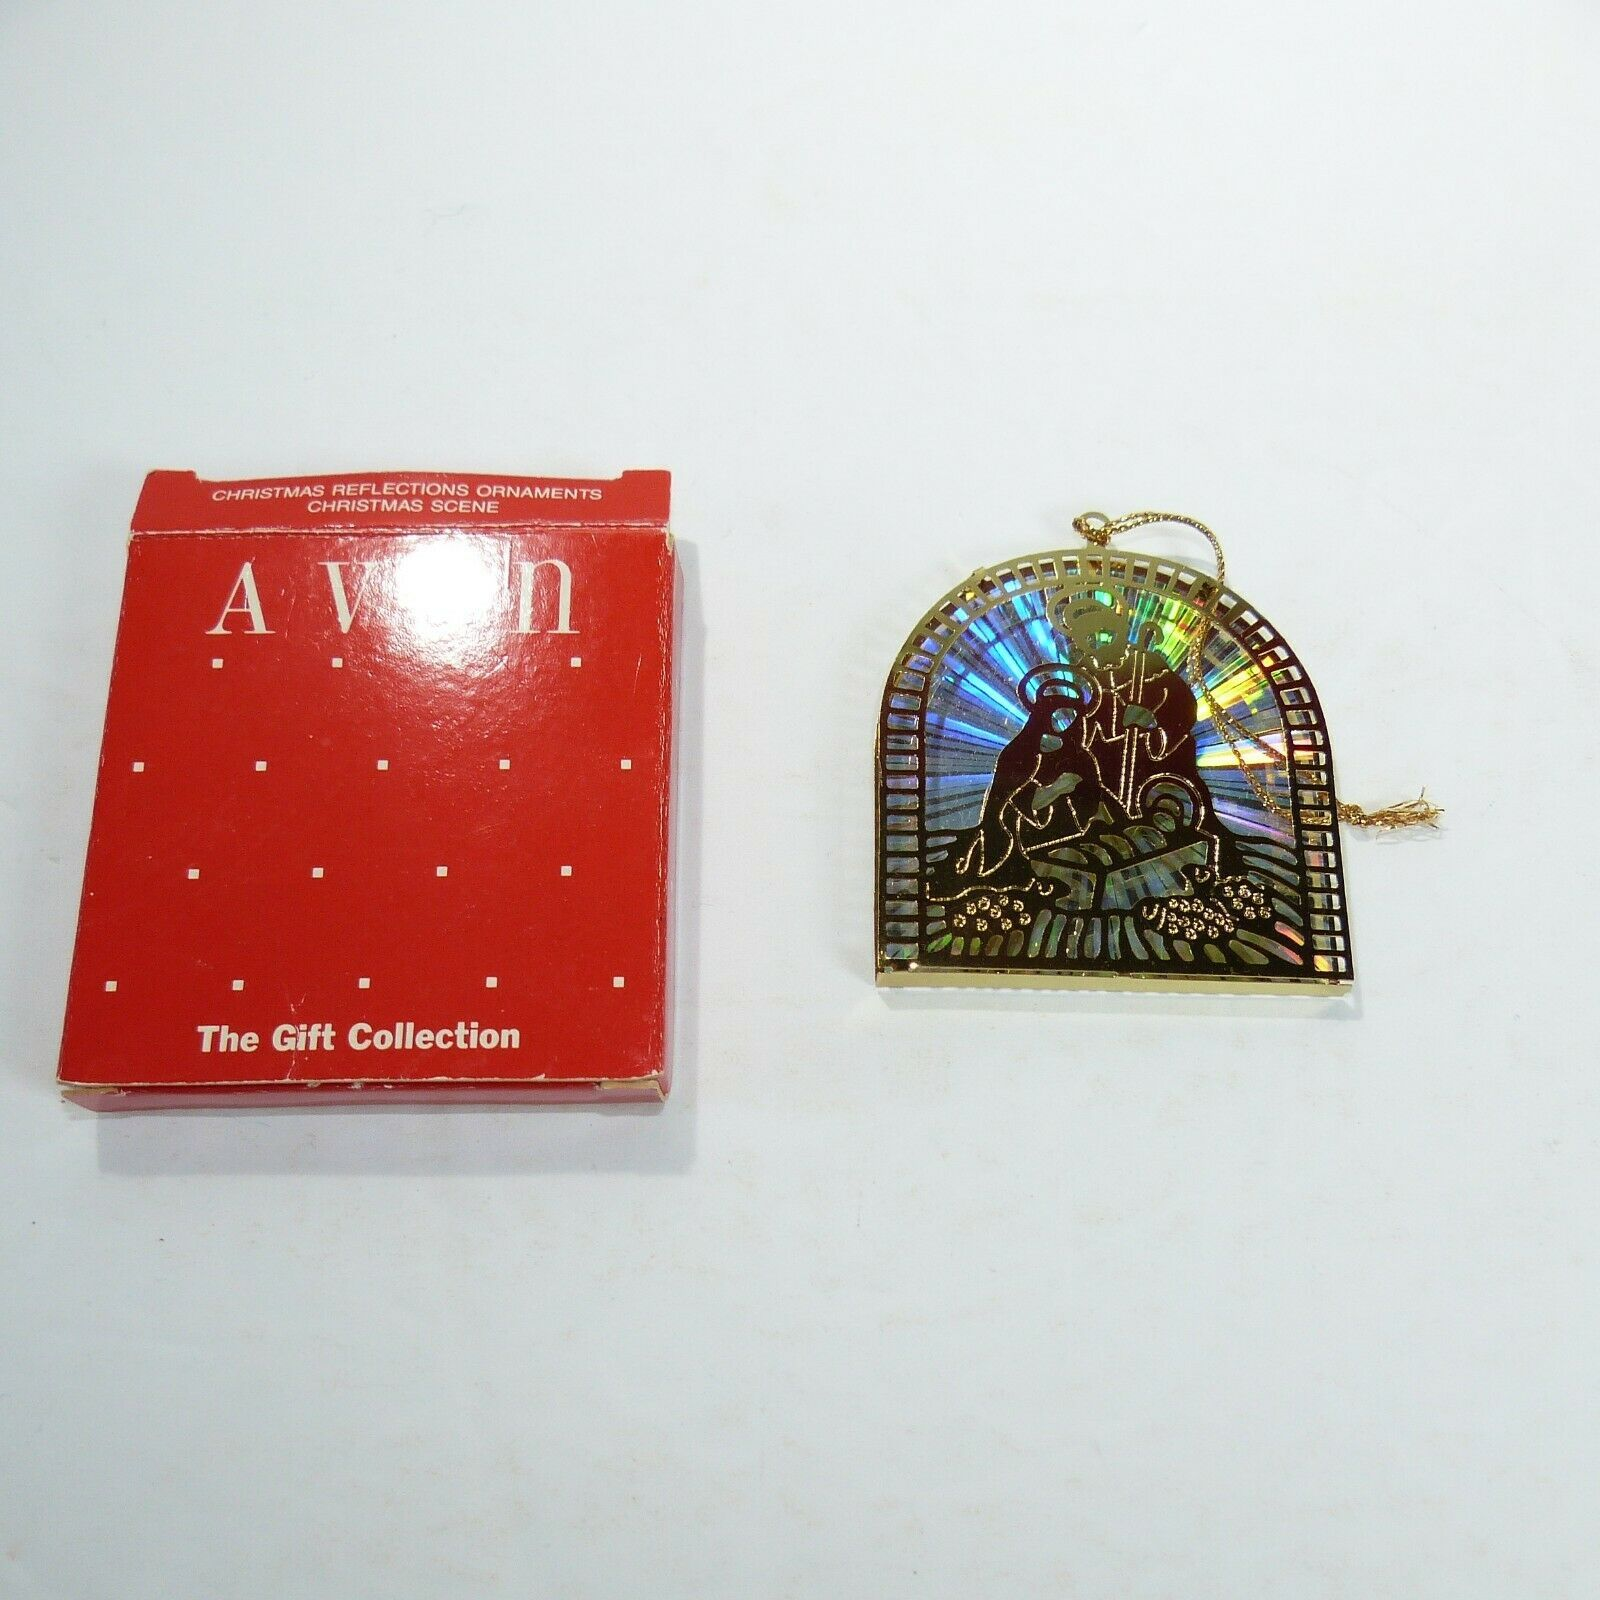 Vintage Avon The Gift Collection CHRISTMAS REFLECTION ORNAMENTS Nativity scene